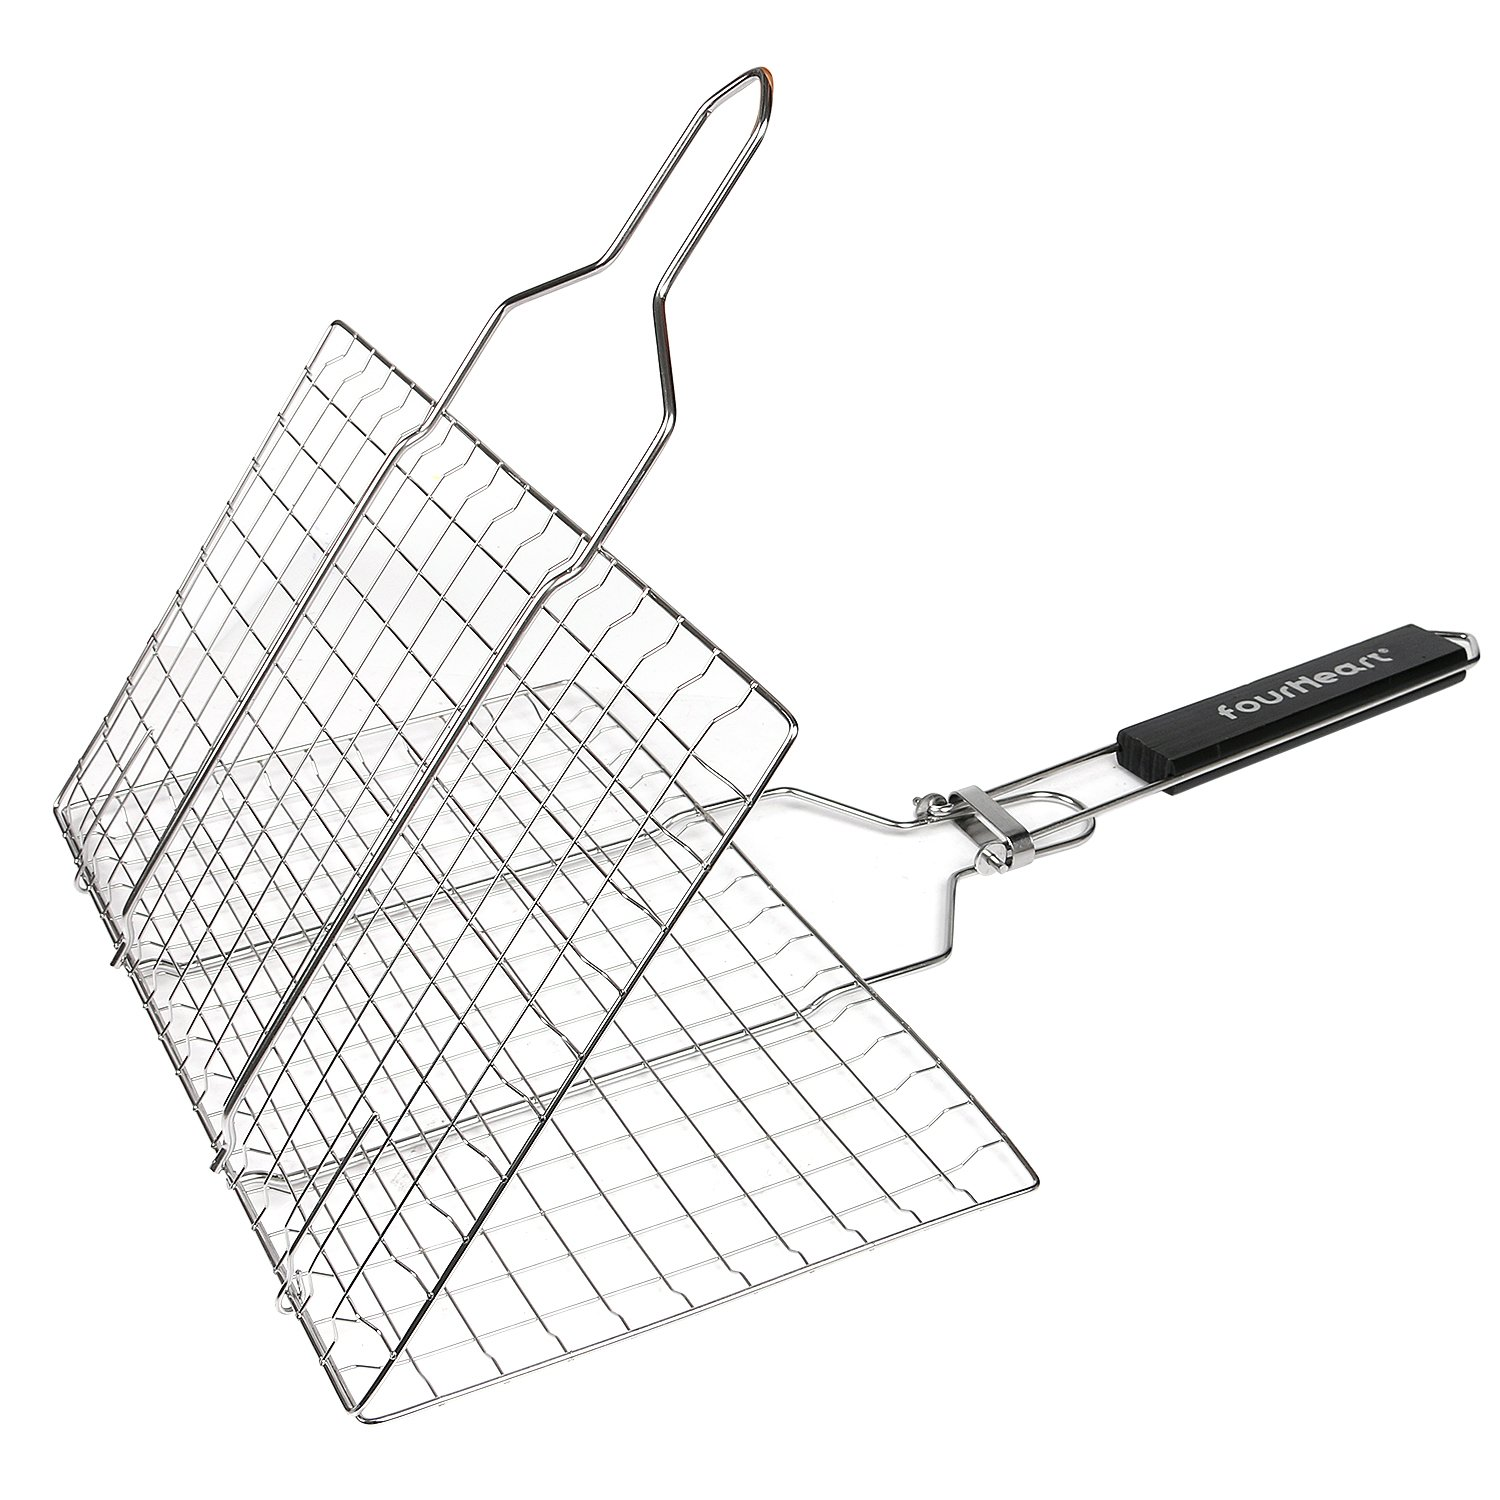 Fourheart Portable BBQ Grilling Basket with Long Handle, Stainless Steel Barbeque Grill Basket Family Outdoor BBQ Accessories Tool for Fish, Vegetable, Steak